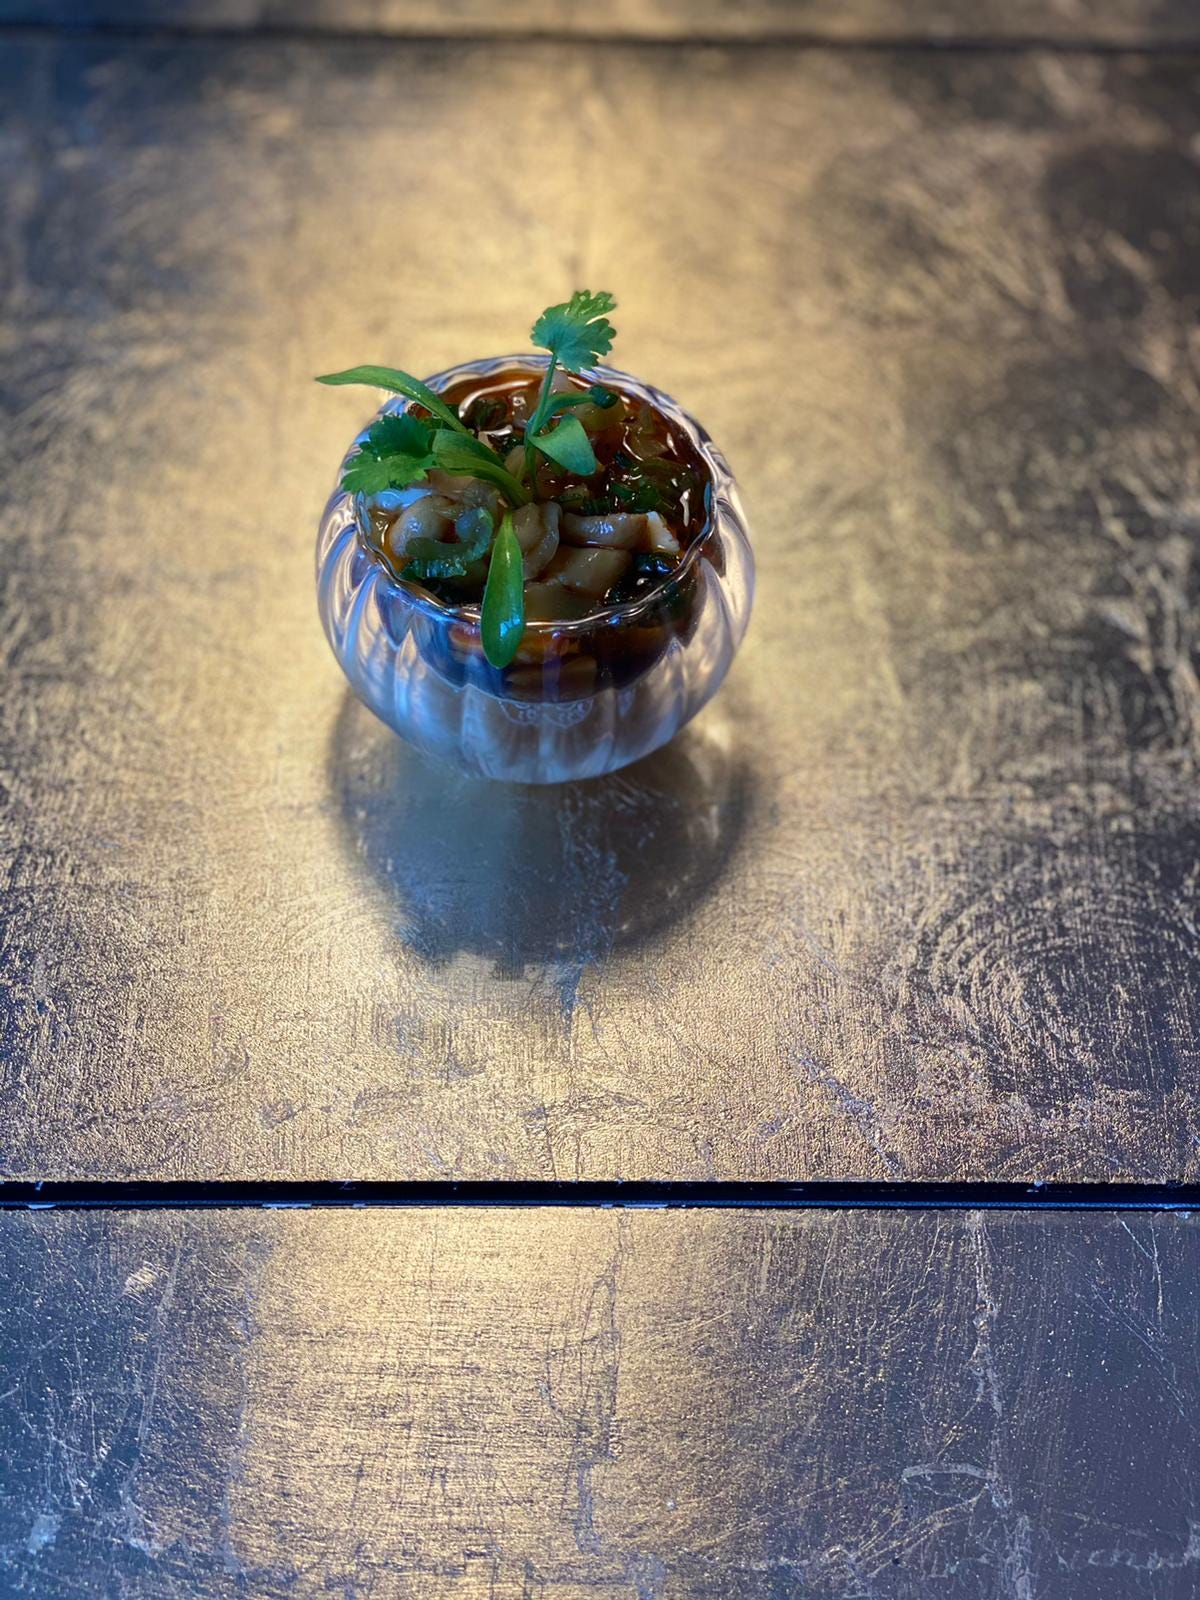 An image of a small round transparent glass container filled with tofu, sauce peanuts and topped with herbs set on a stainless steel surface